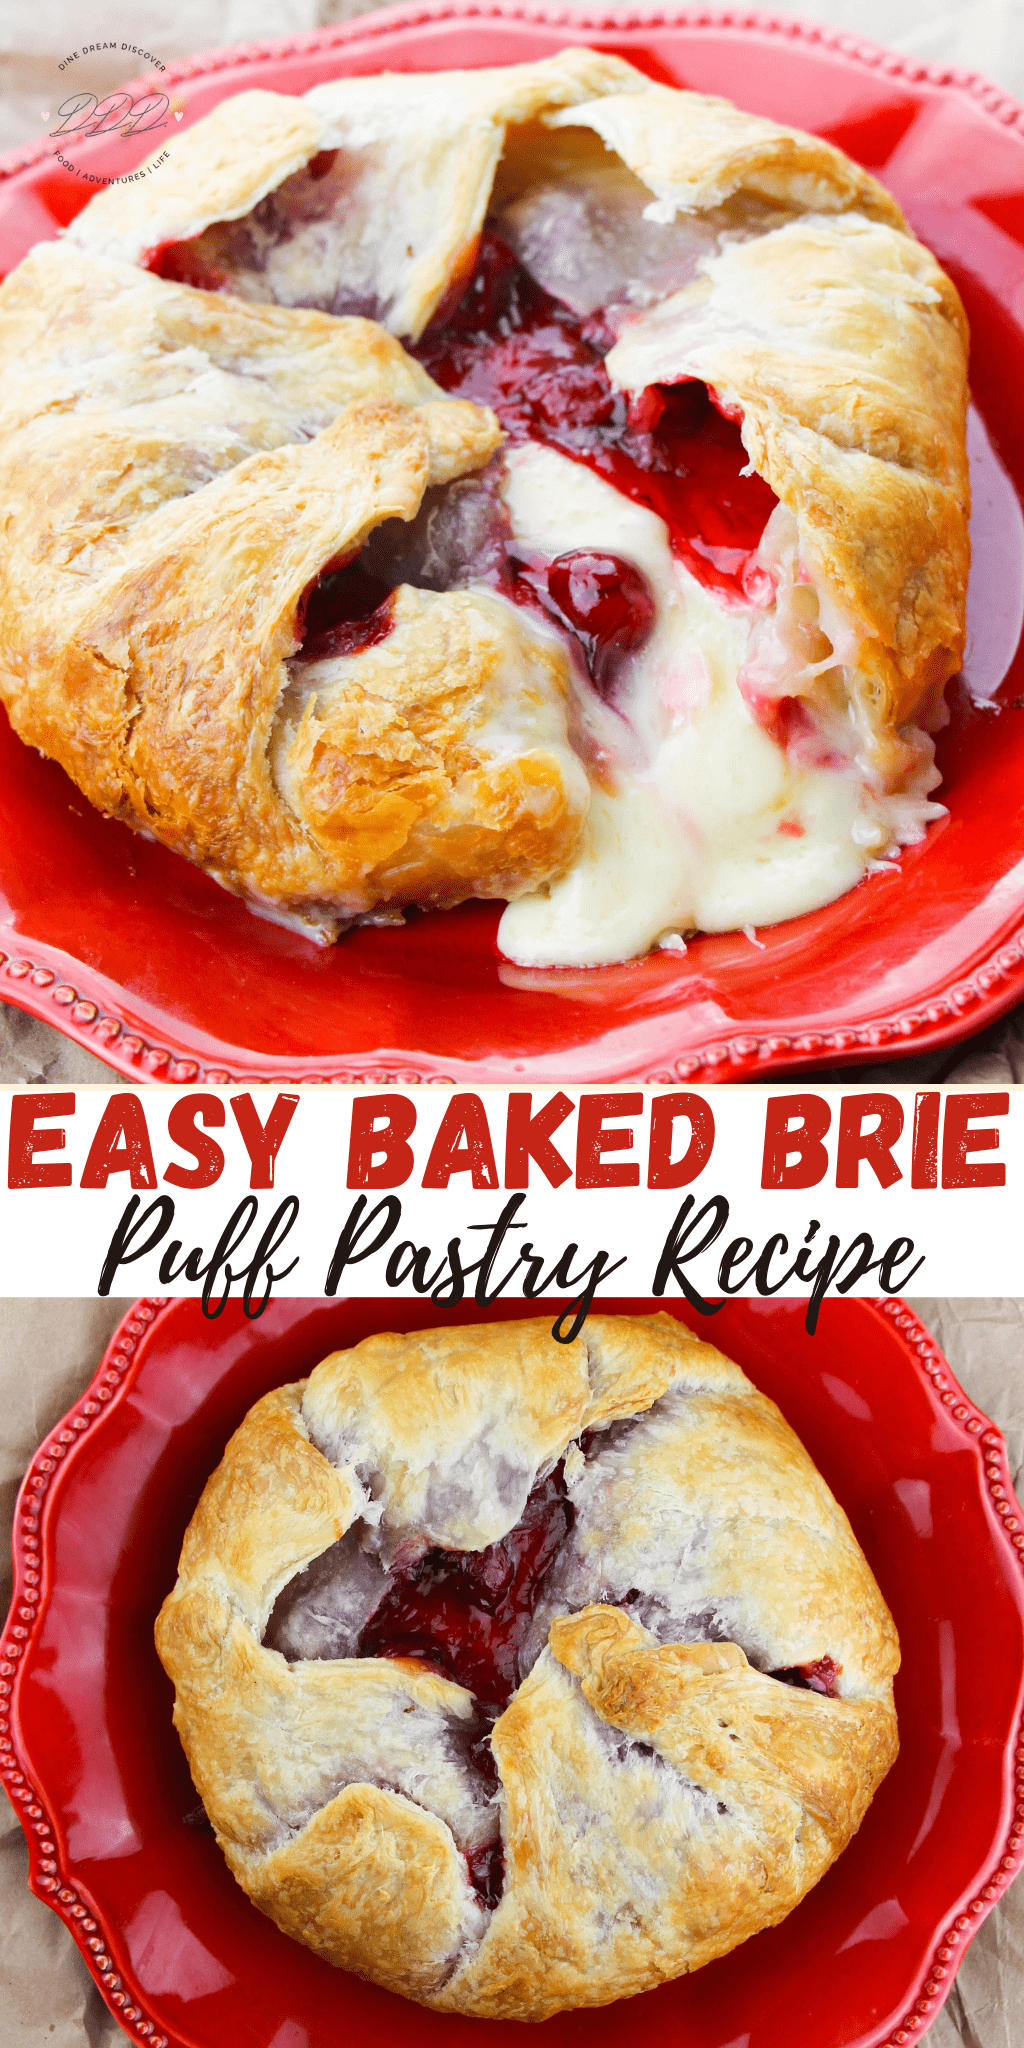 Easy Baked Brie Puff Pastry Recipe